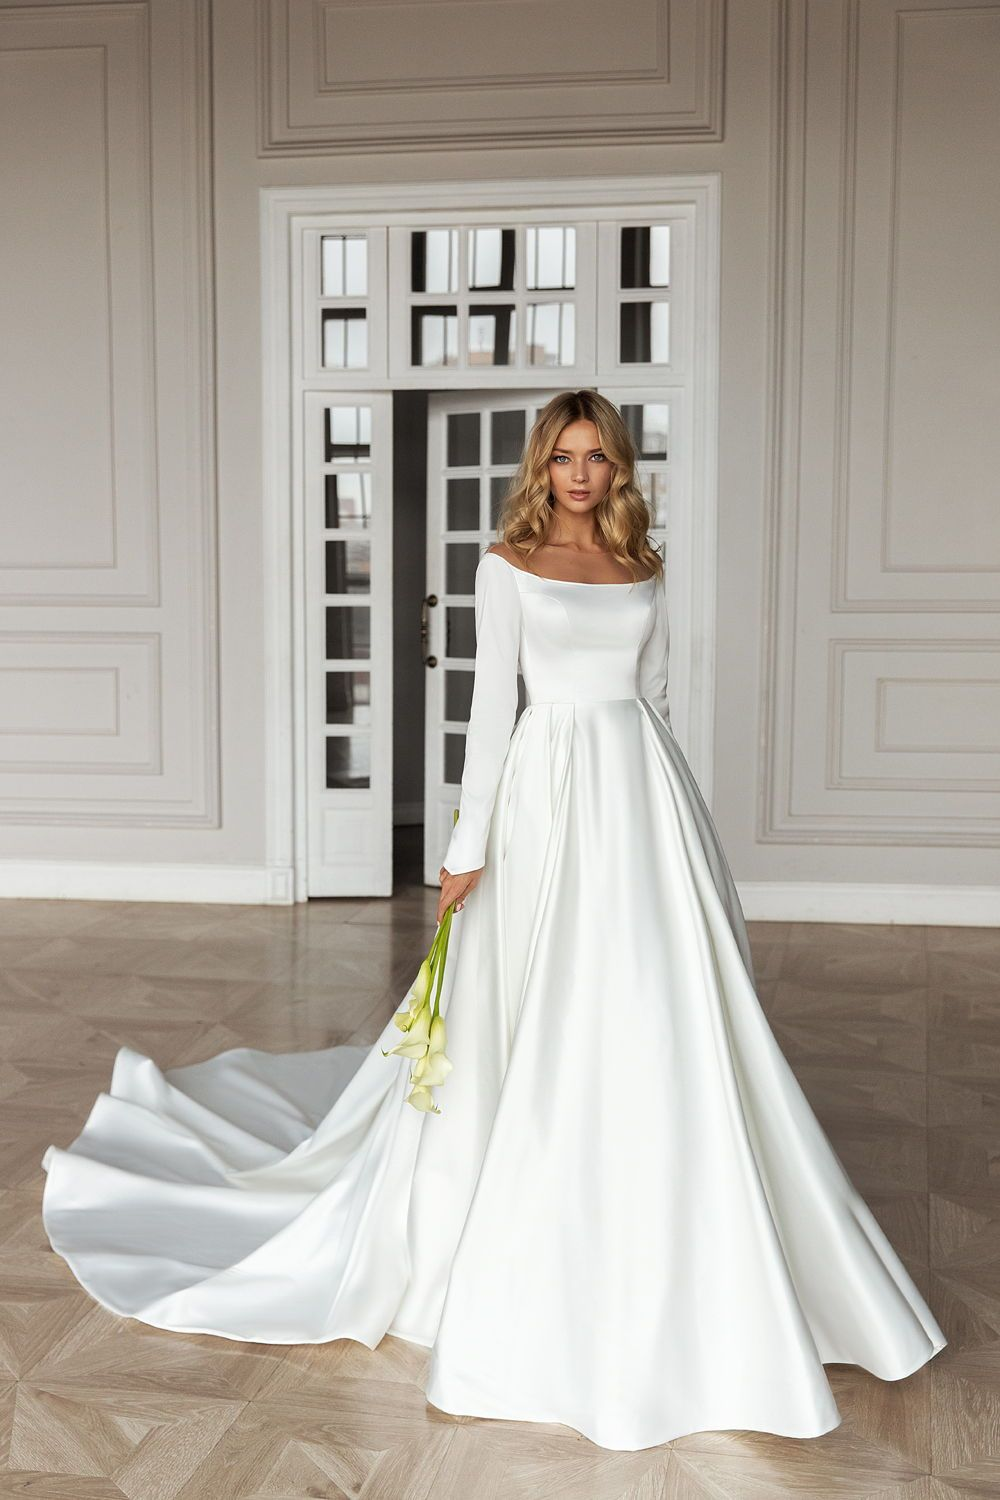 Simple But Not Basic In 2020 Silk Bridal Gown Wedding Dress Long Sleeve Modest Wedding Dresses